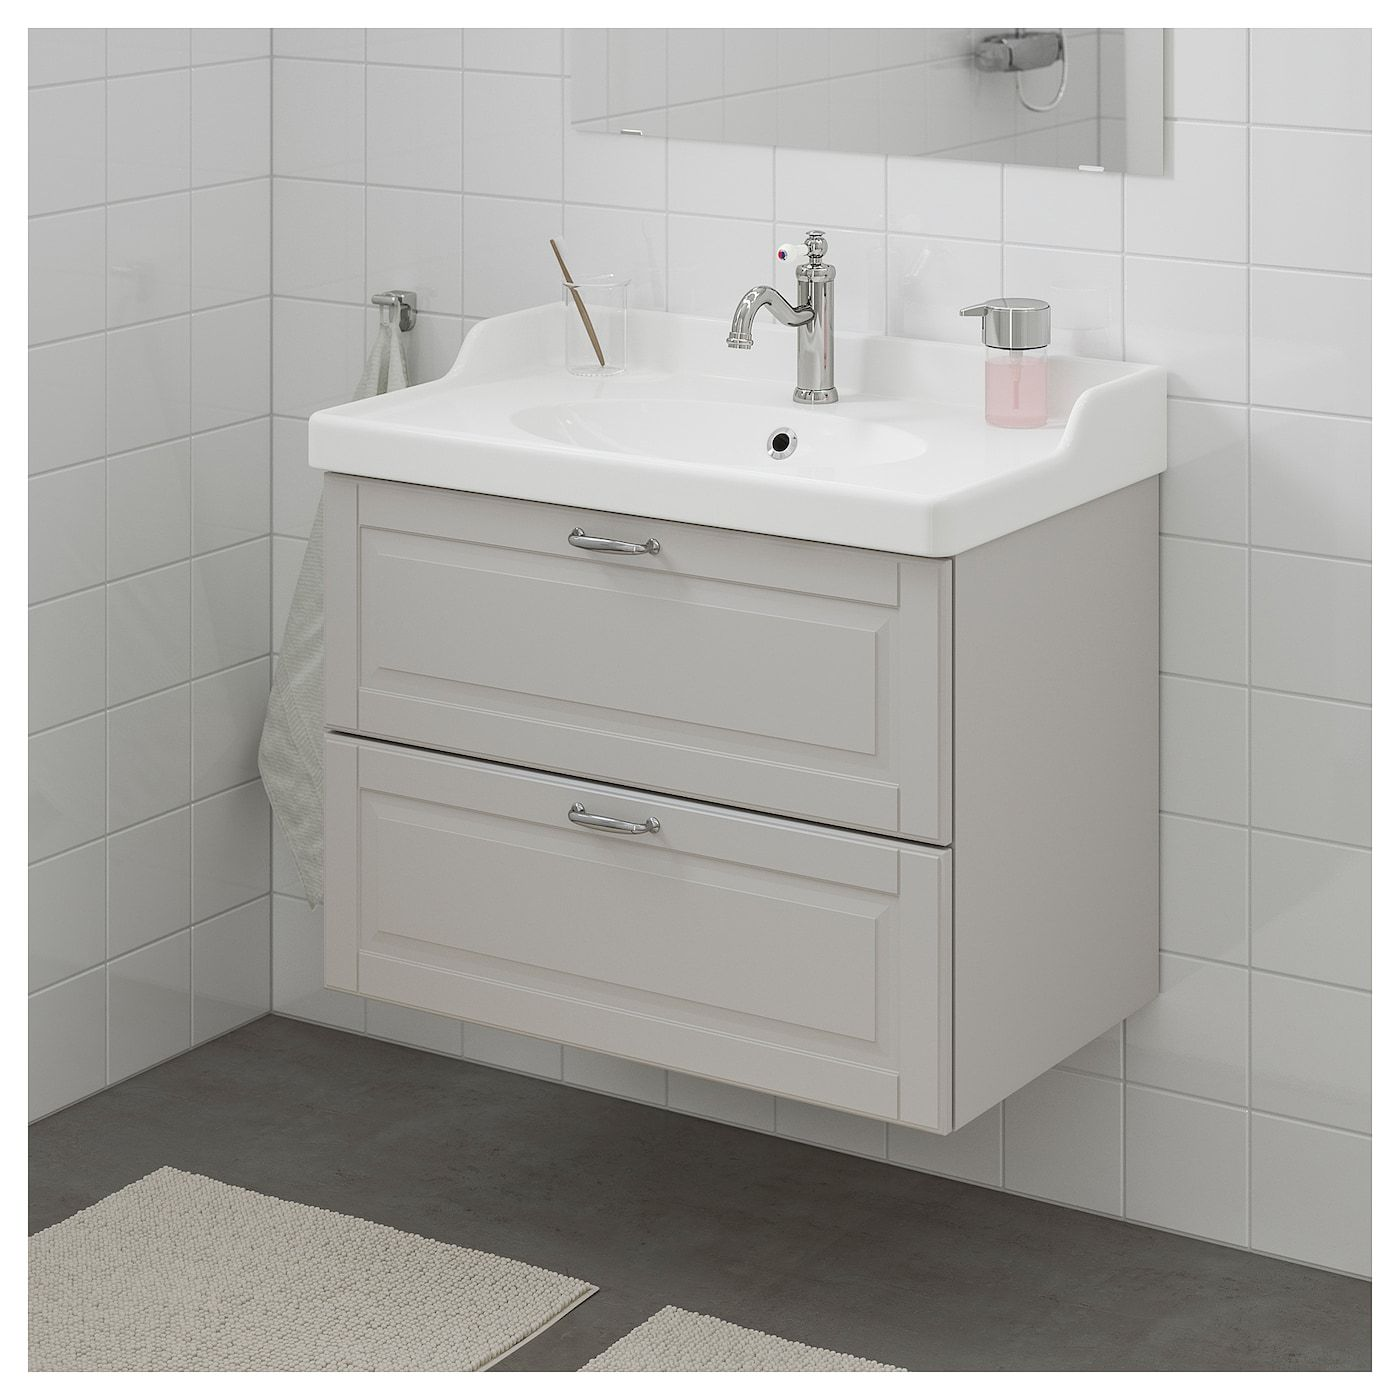 Ikea Godmorgon Rattviken Bathroom Vanity Kasjon Light Gray Ikea Godmorgon Bathroom Vanity Bathroom Sink Cabinets